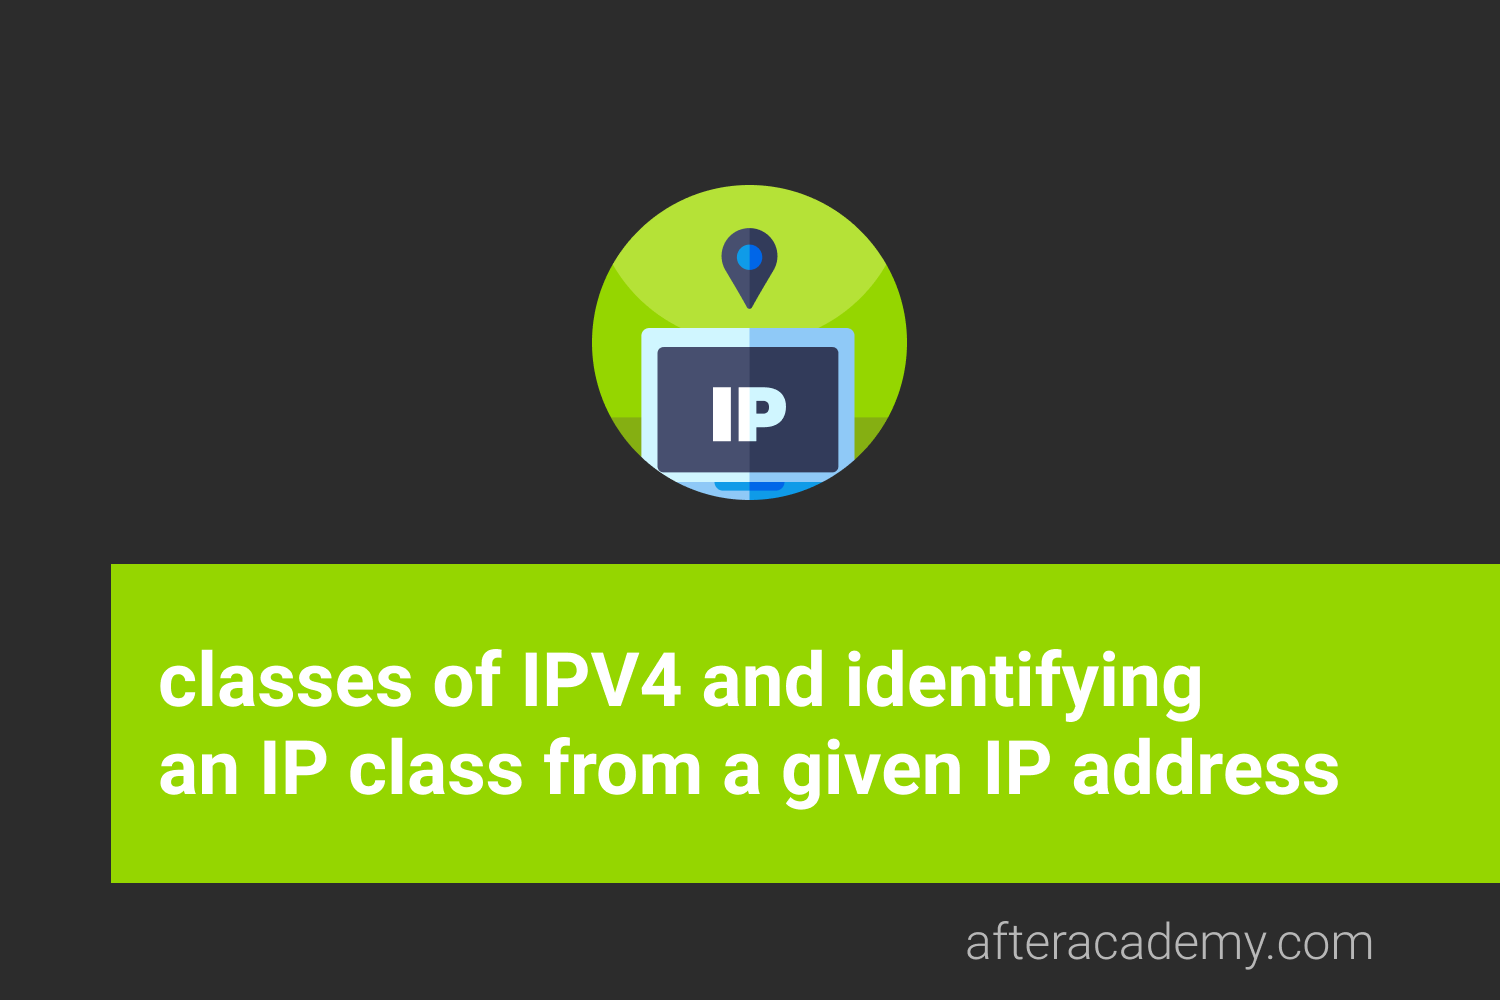 What are the classes of IPV4? How to identify IP class from a given IP address?